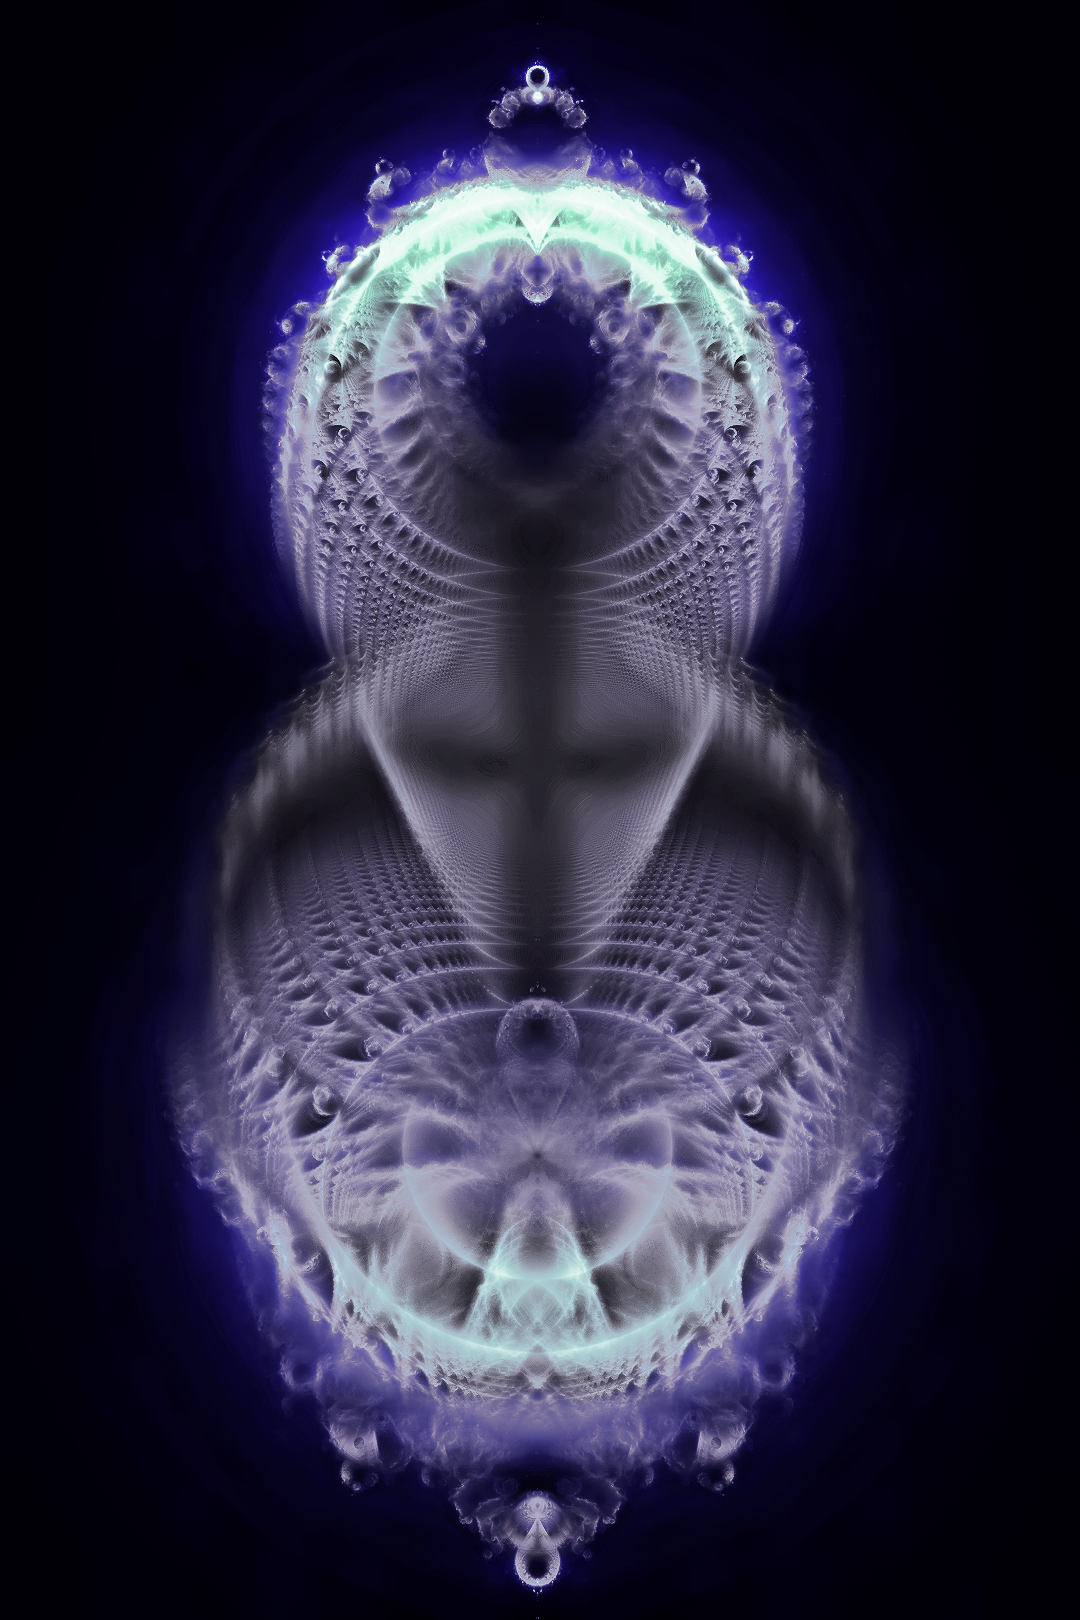 """Christobrot Fractal at 700 million iterations. (Raw form) Set to starting pint at one rather than zero as is the so-called """"Buddhabrot"""" fractal."""